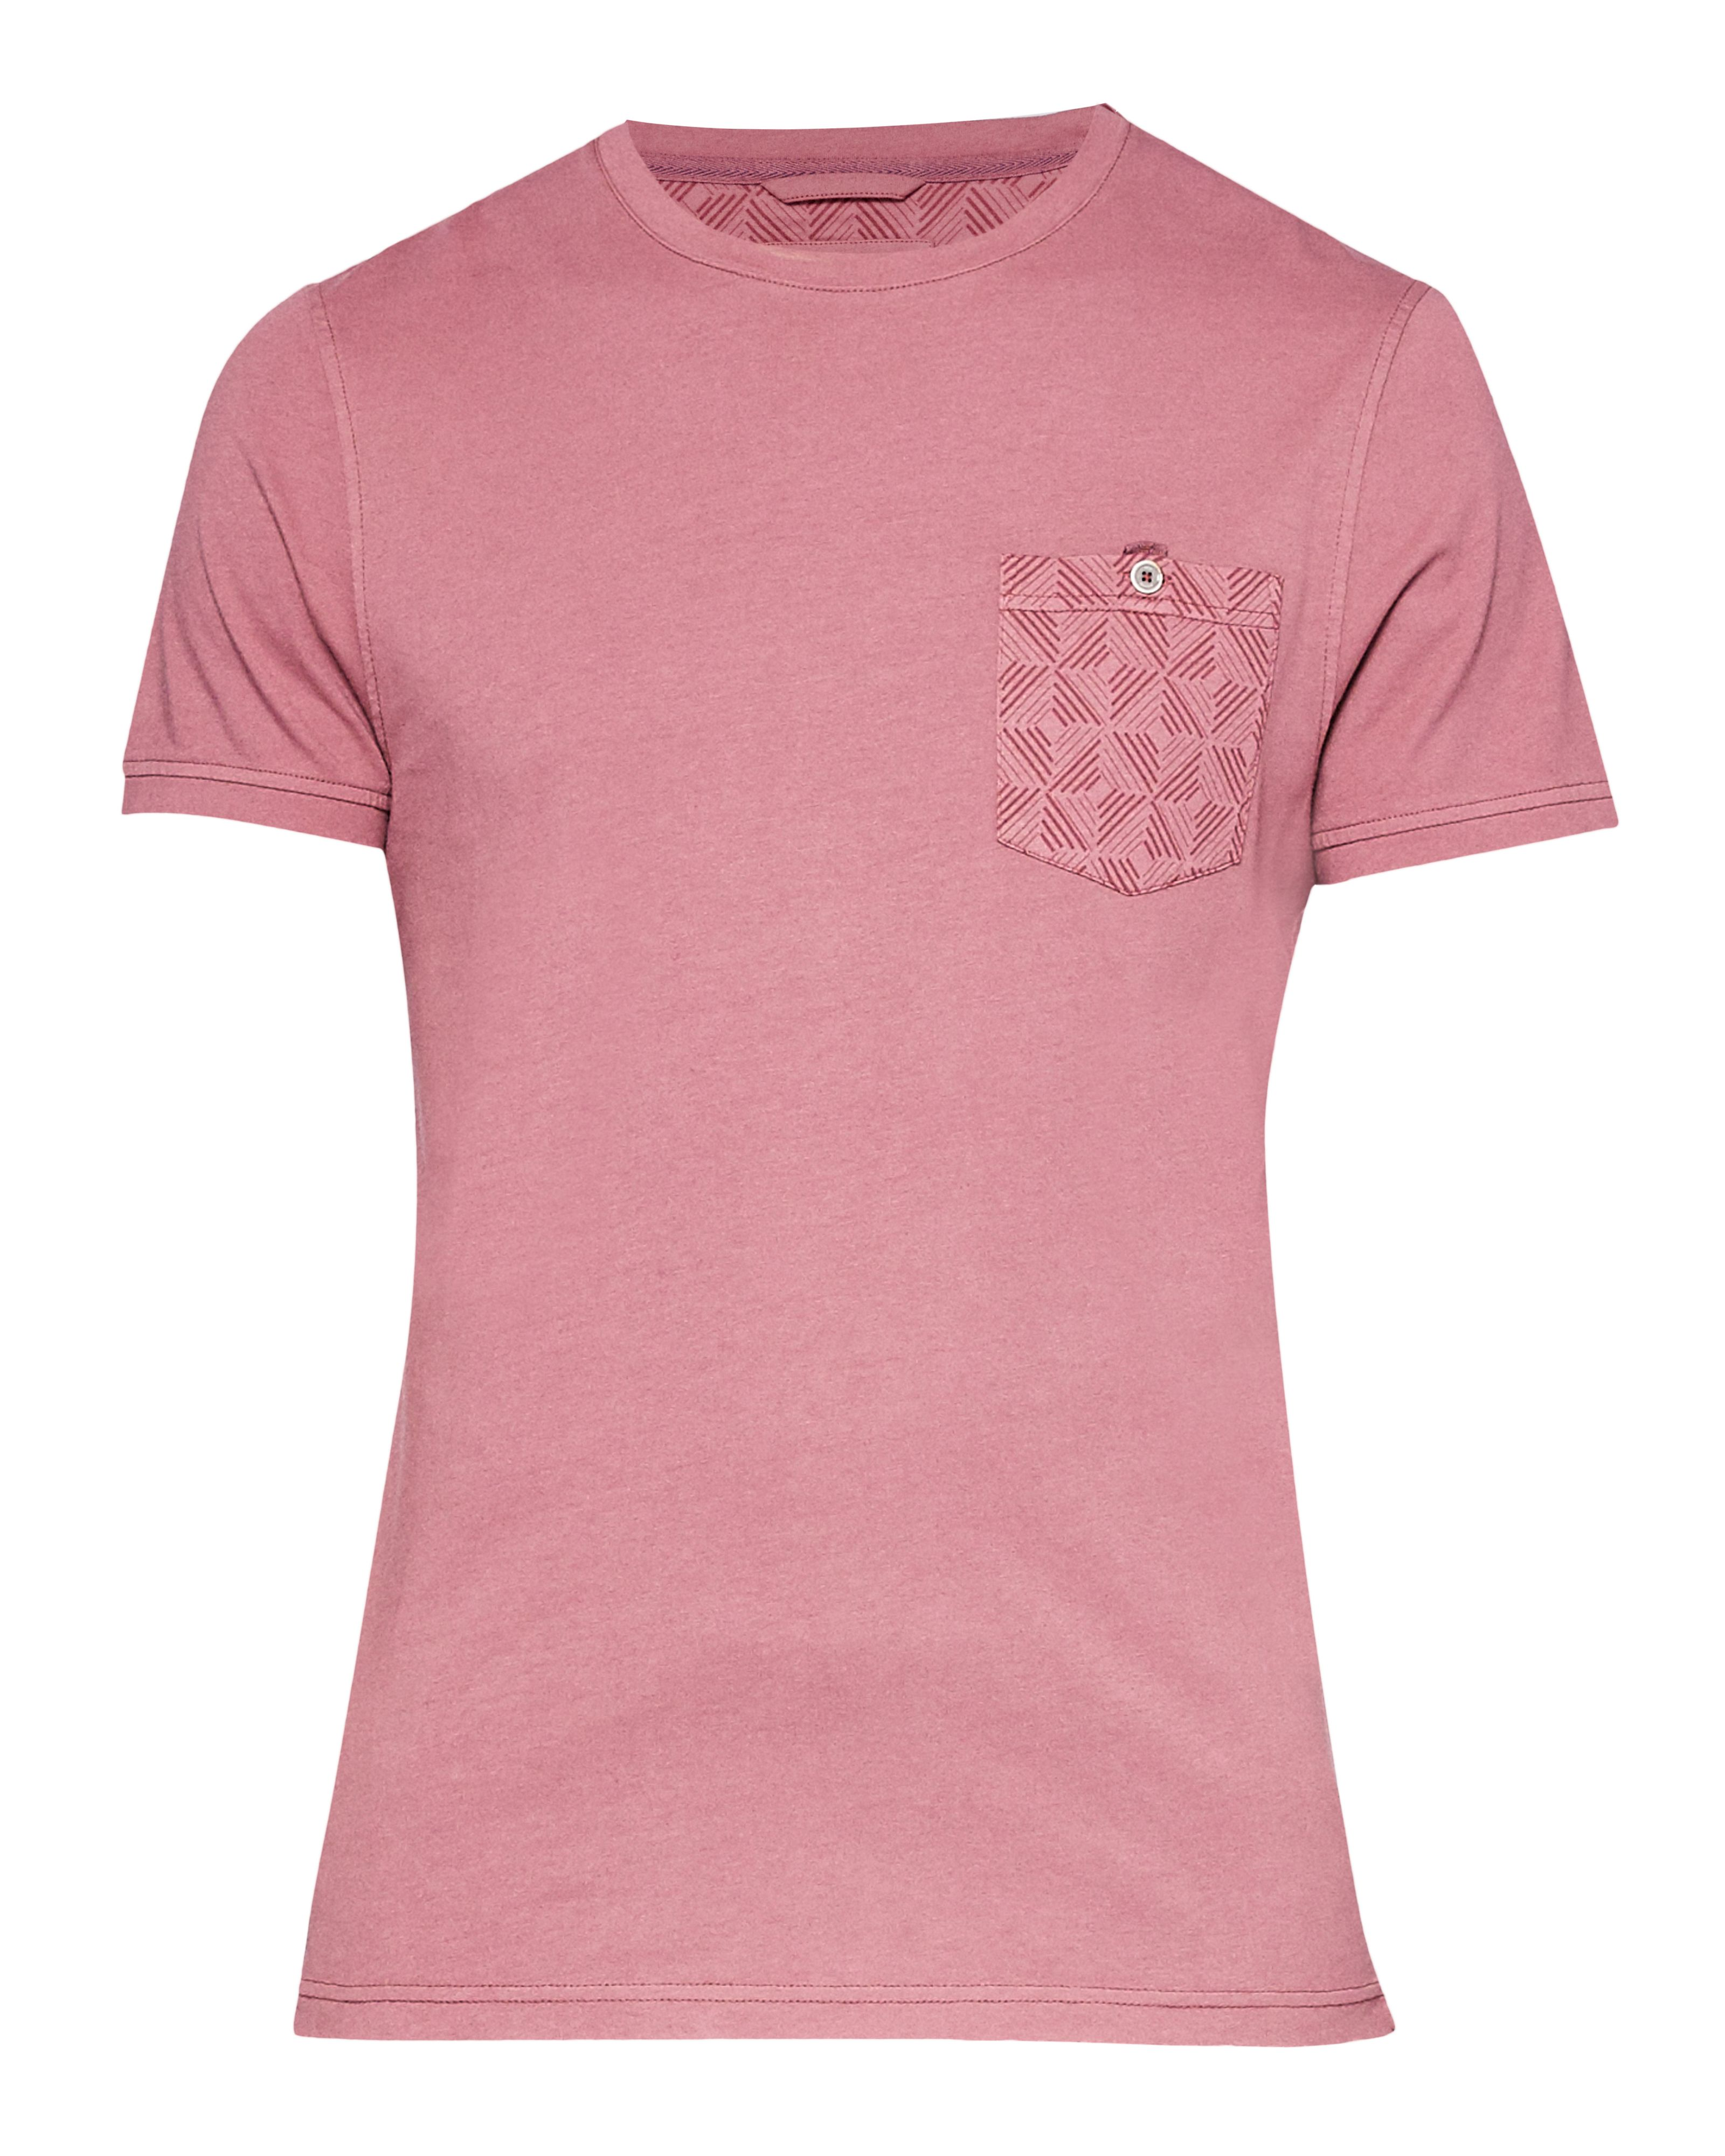 Men's Ted Baker Bothy Geo Print Pocket Cotton T-Shirt, Candy Pink